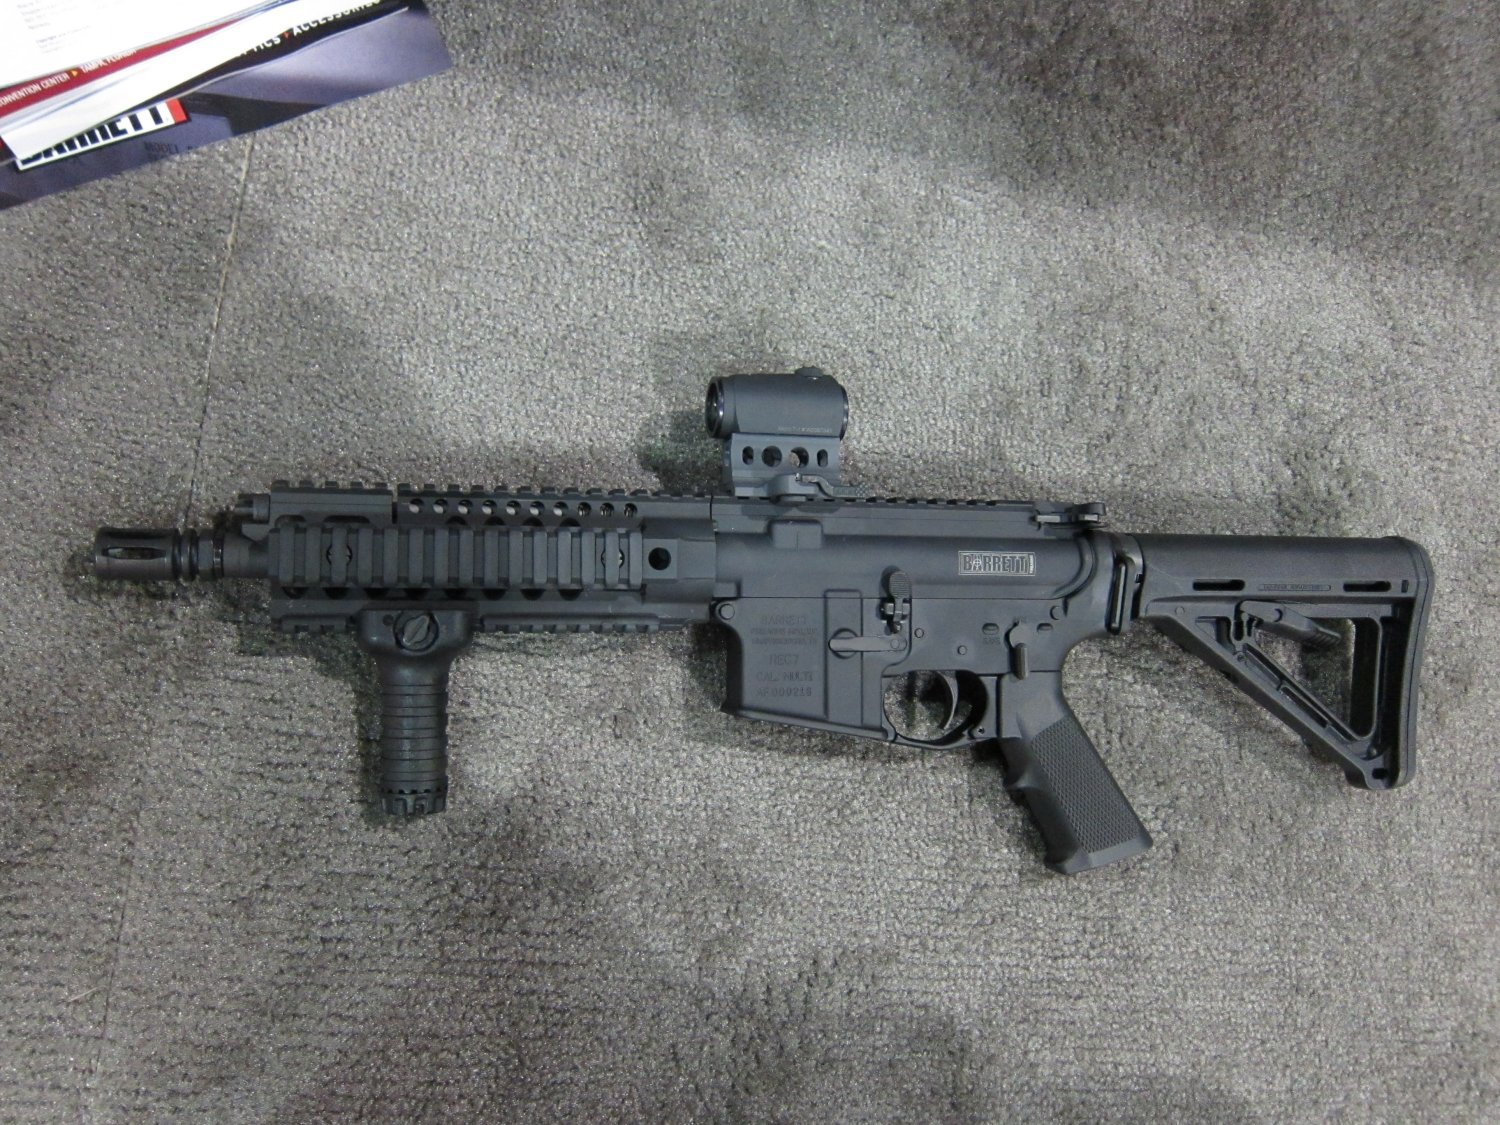 Barrett REC7 5.56mm AR SBR 9 Barrett REC7 5.56 8 Piston AR PDW Displayed at SOFIC 2010 (Photos!): 5.56mm NATO Piston Driven Tactical AR Carbine/SBR for Military Special Operations Forces (SOF)